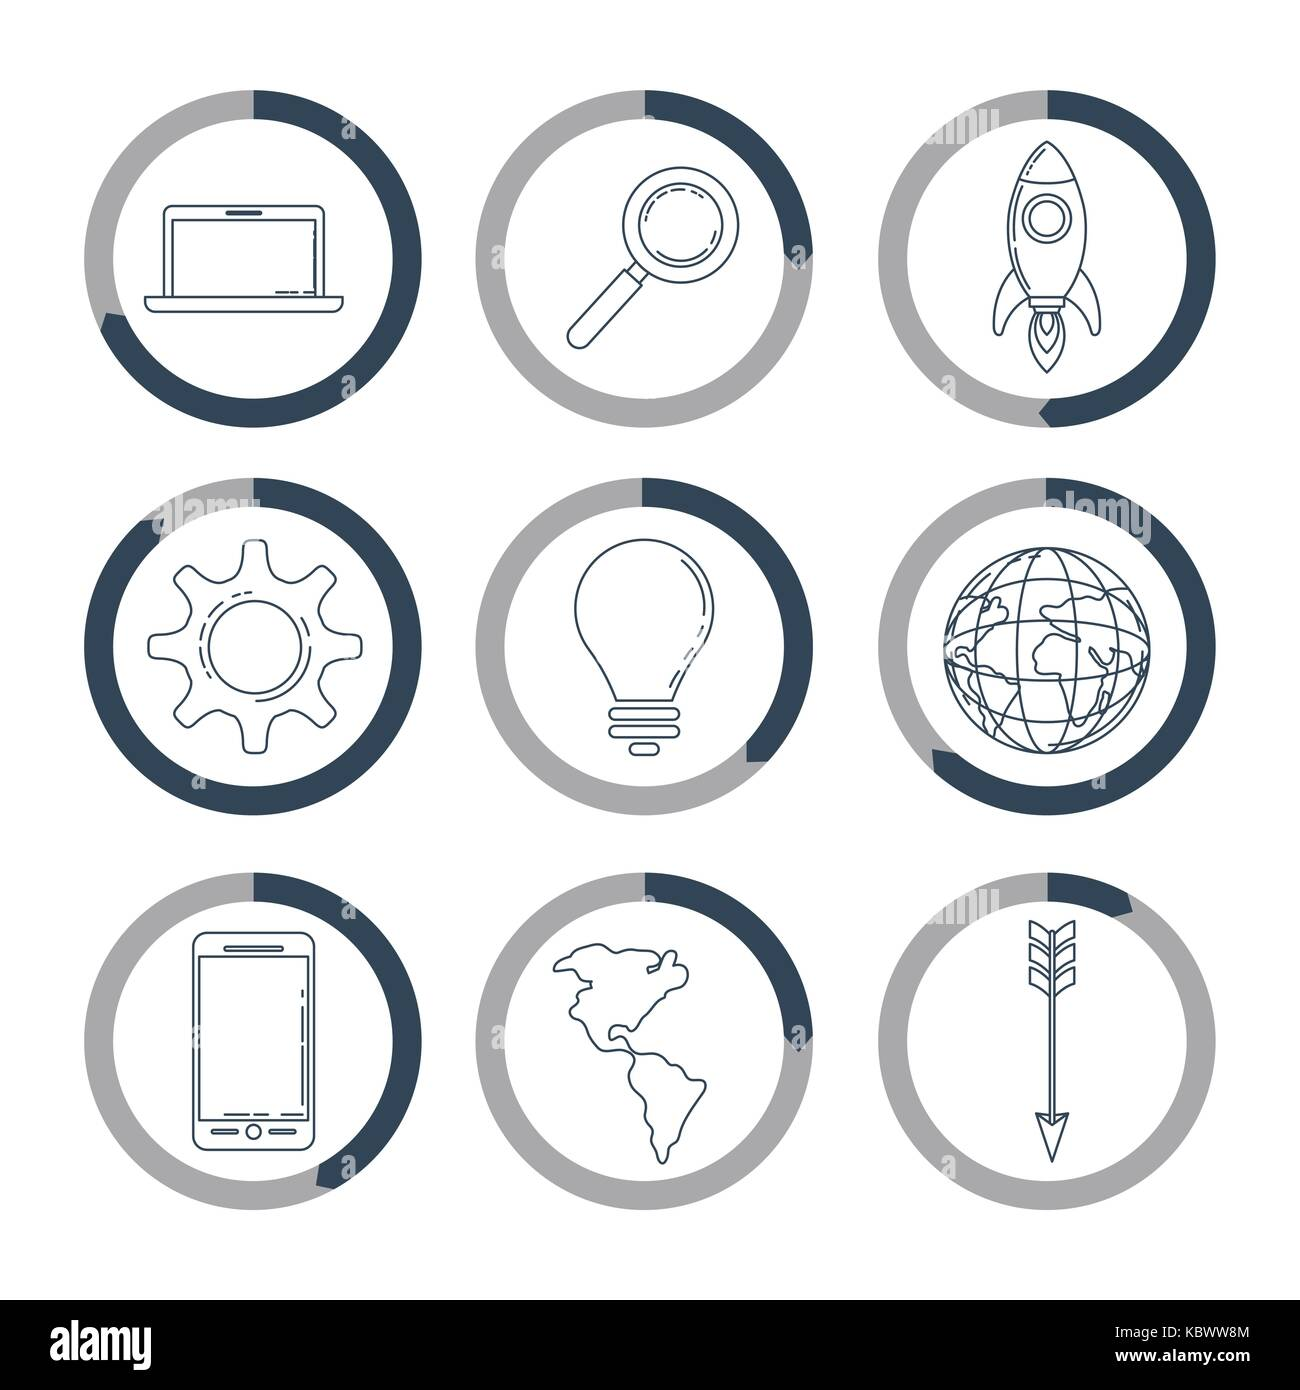 infographic monochrome with icons in circles - Stock Image